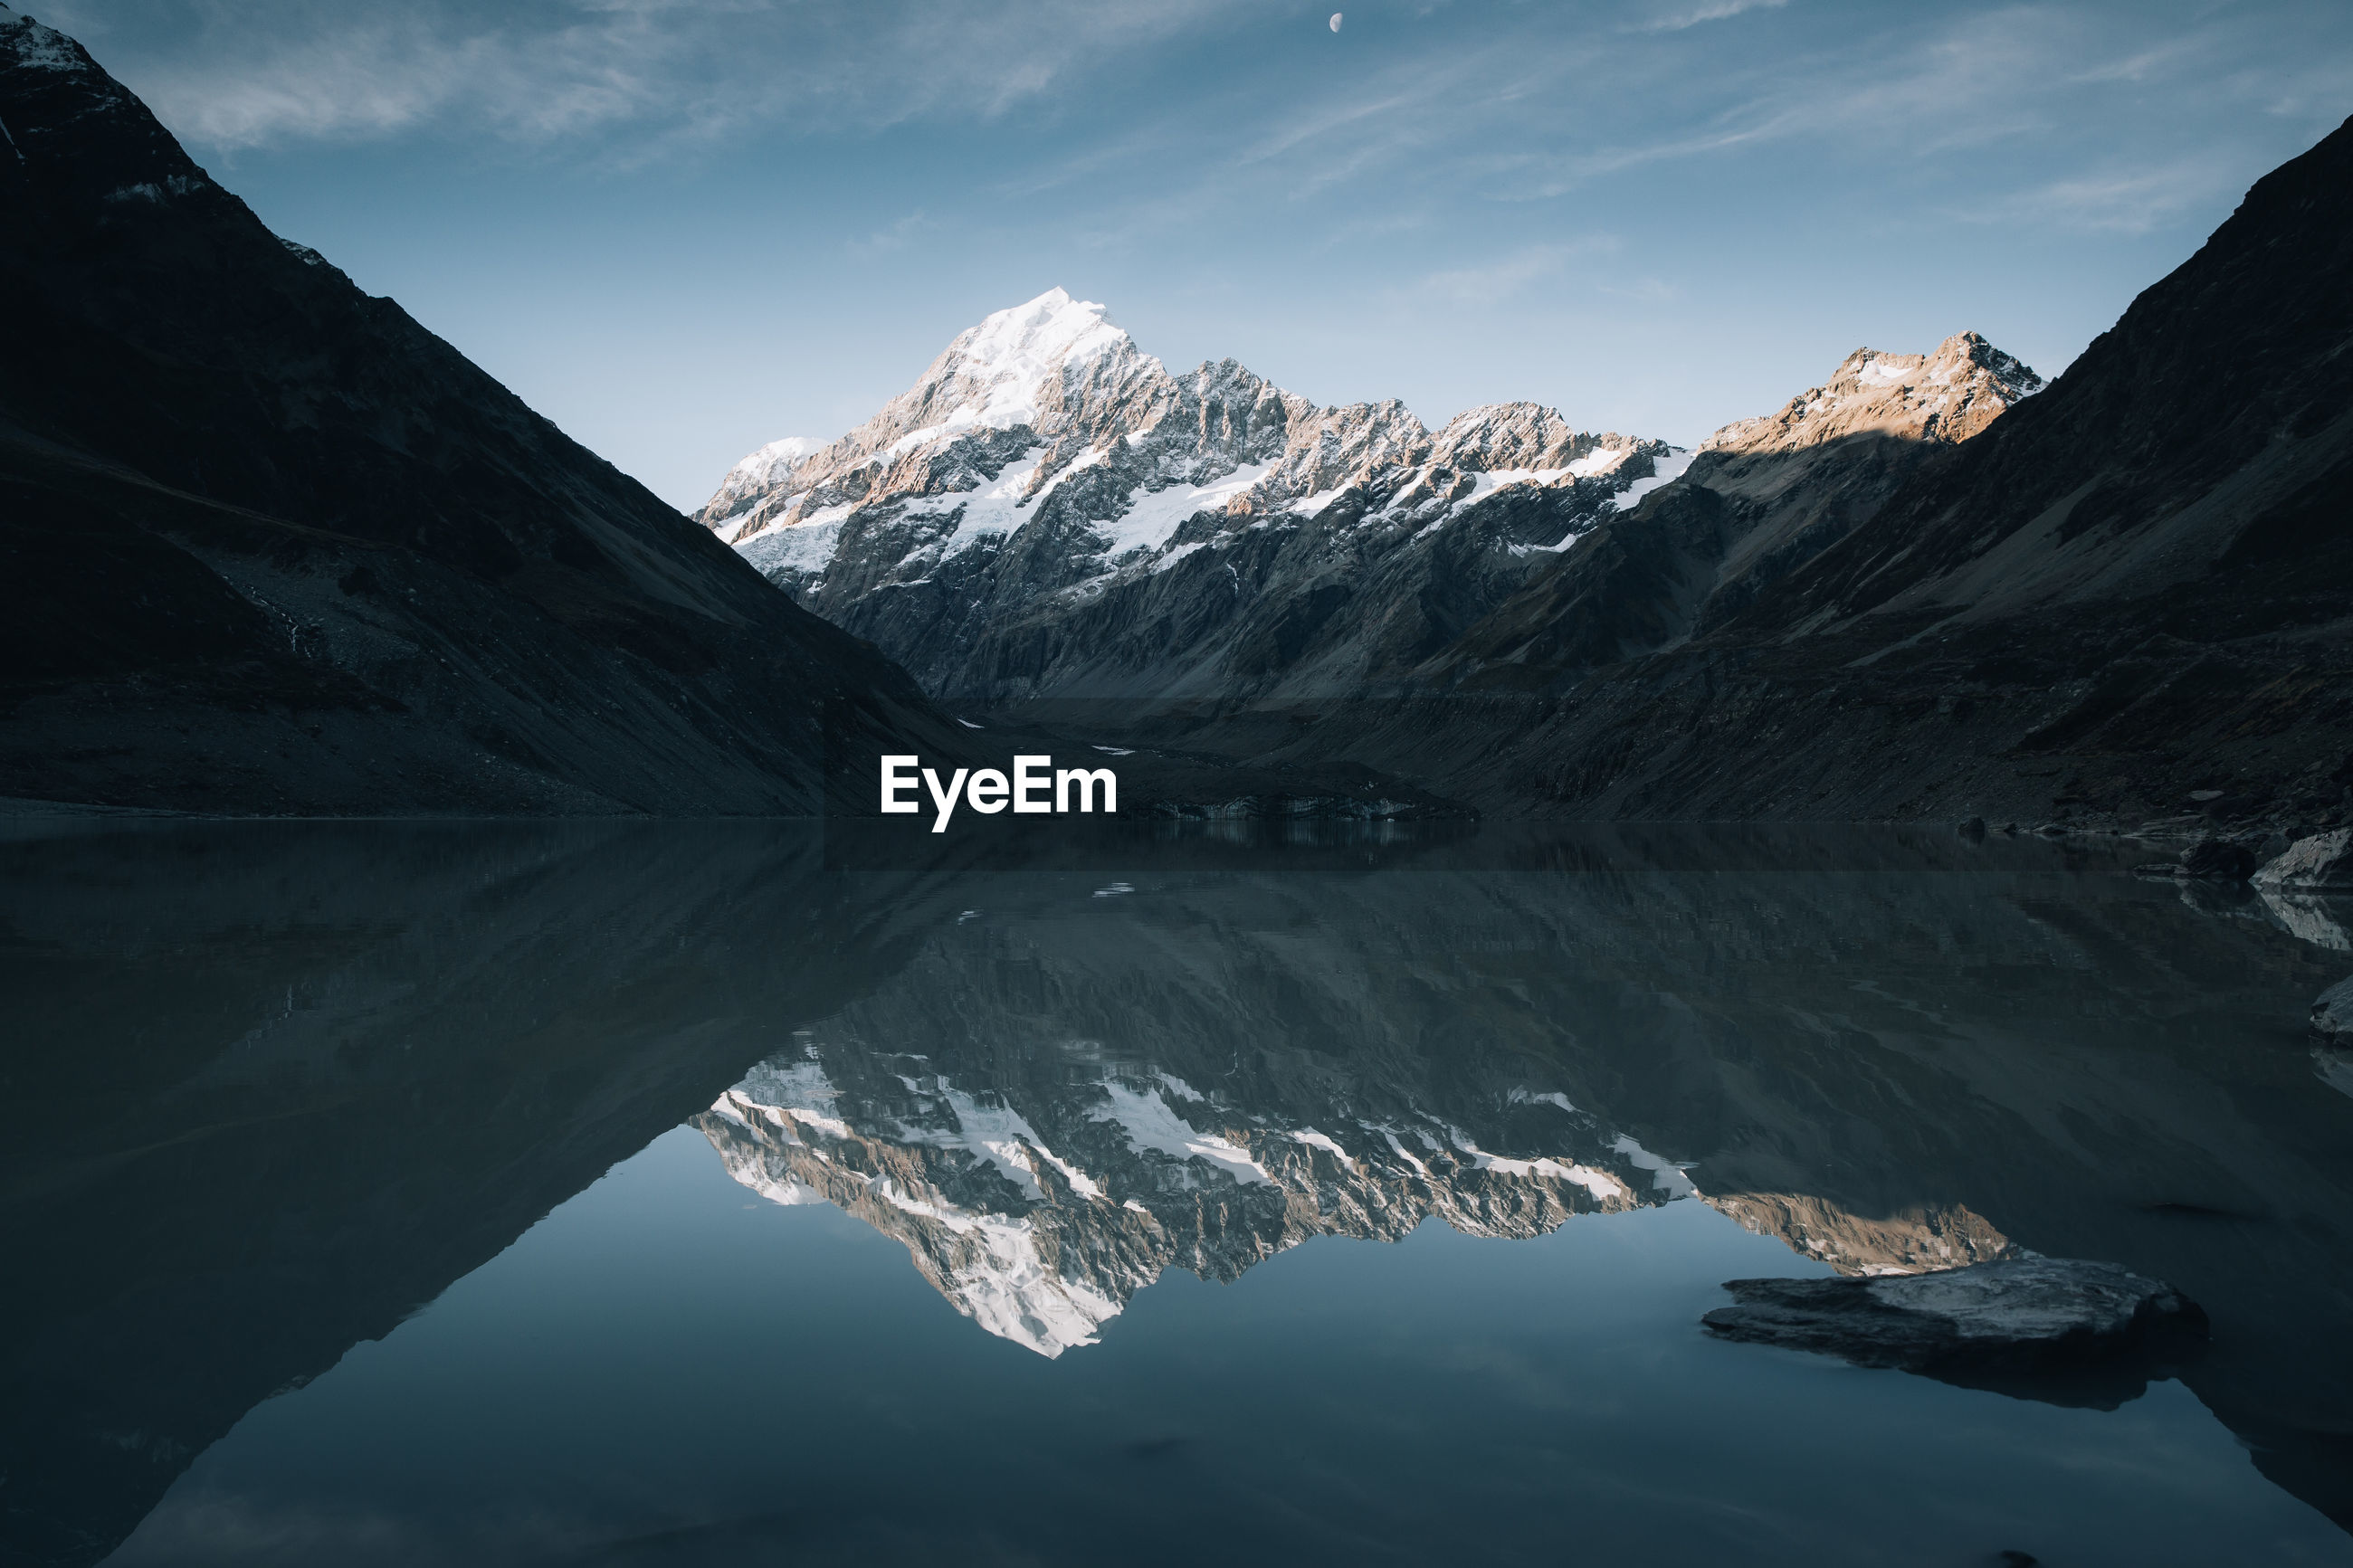 Scenic view of lake against snowcapped mountains